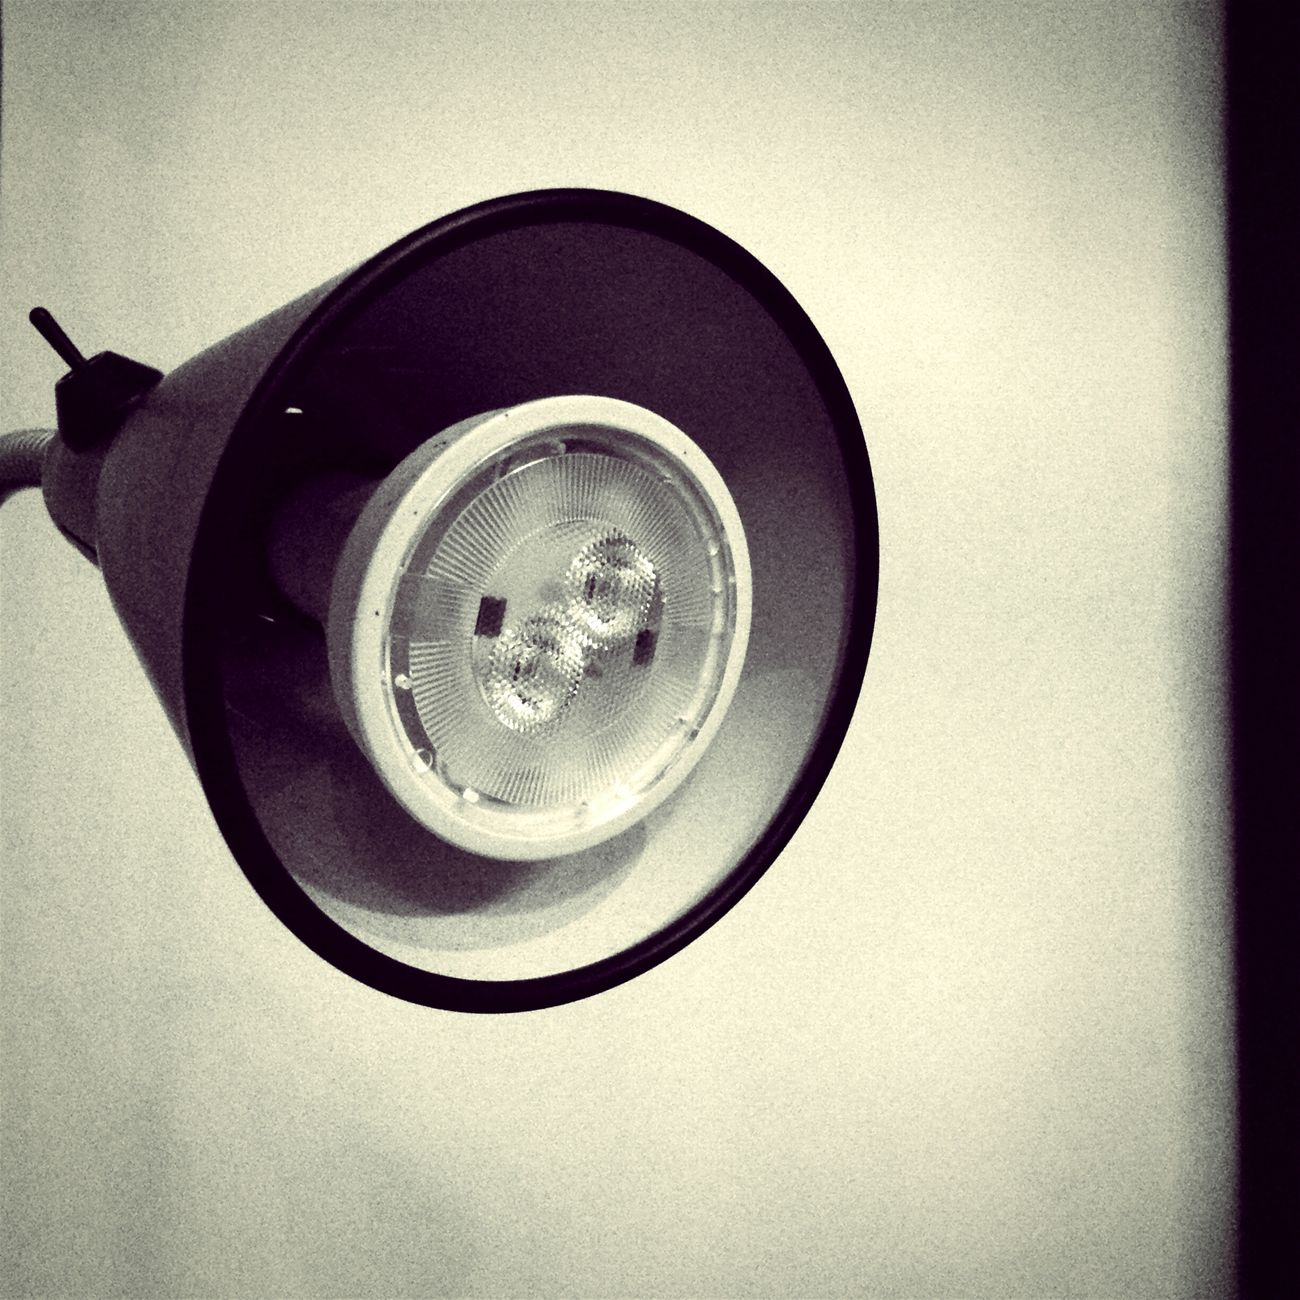 Just wanted to take a picture and share it with you. :) Lamp Minimalism Life 1 filter Smart Simplicity Throw A Curve Monochrome Square Squarepic Blackandwhite Black & White Black And White